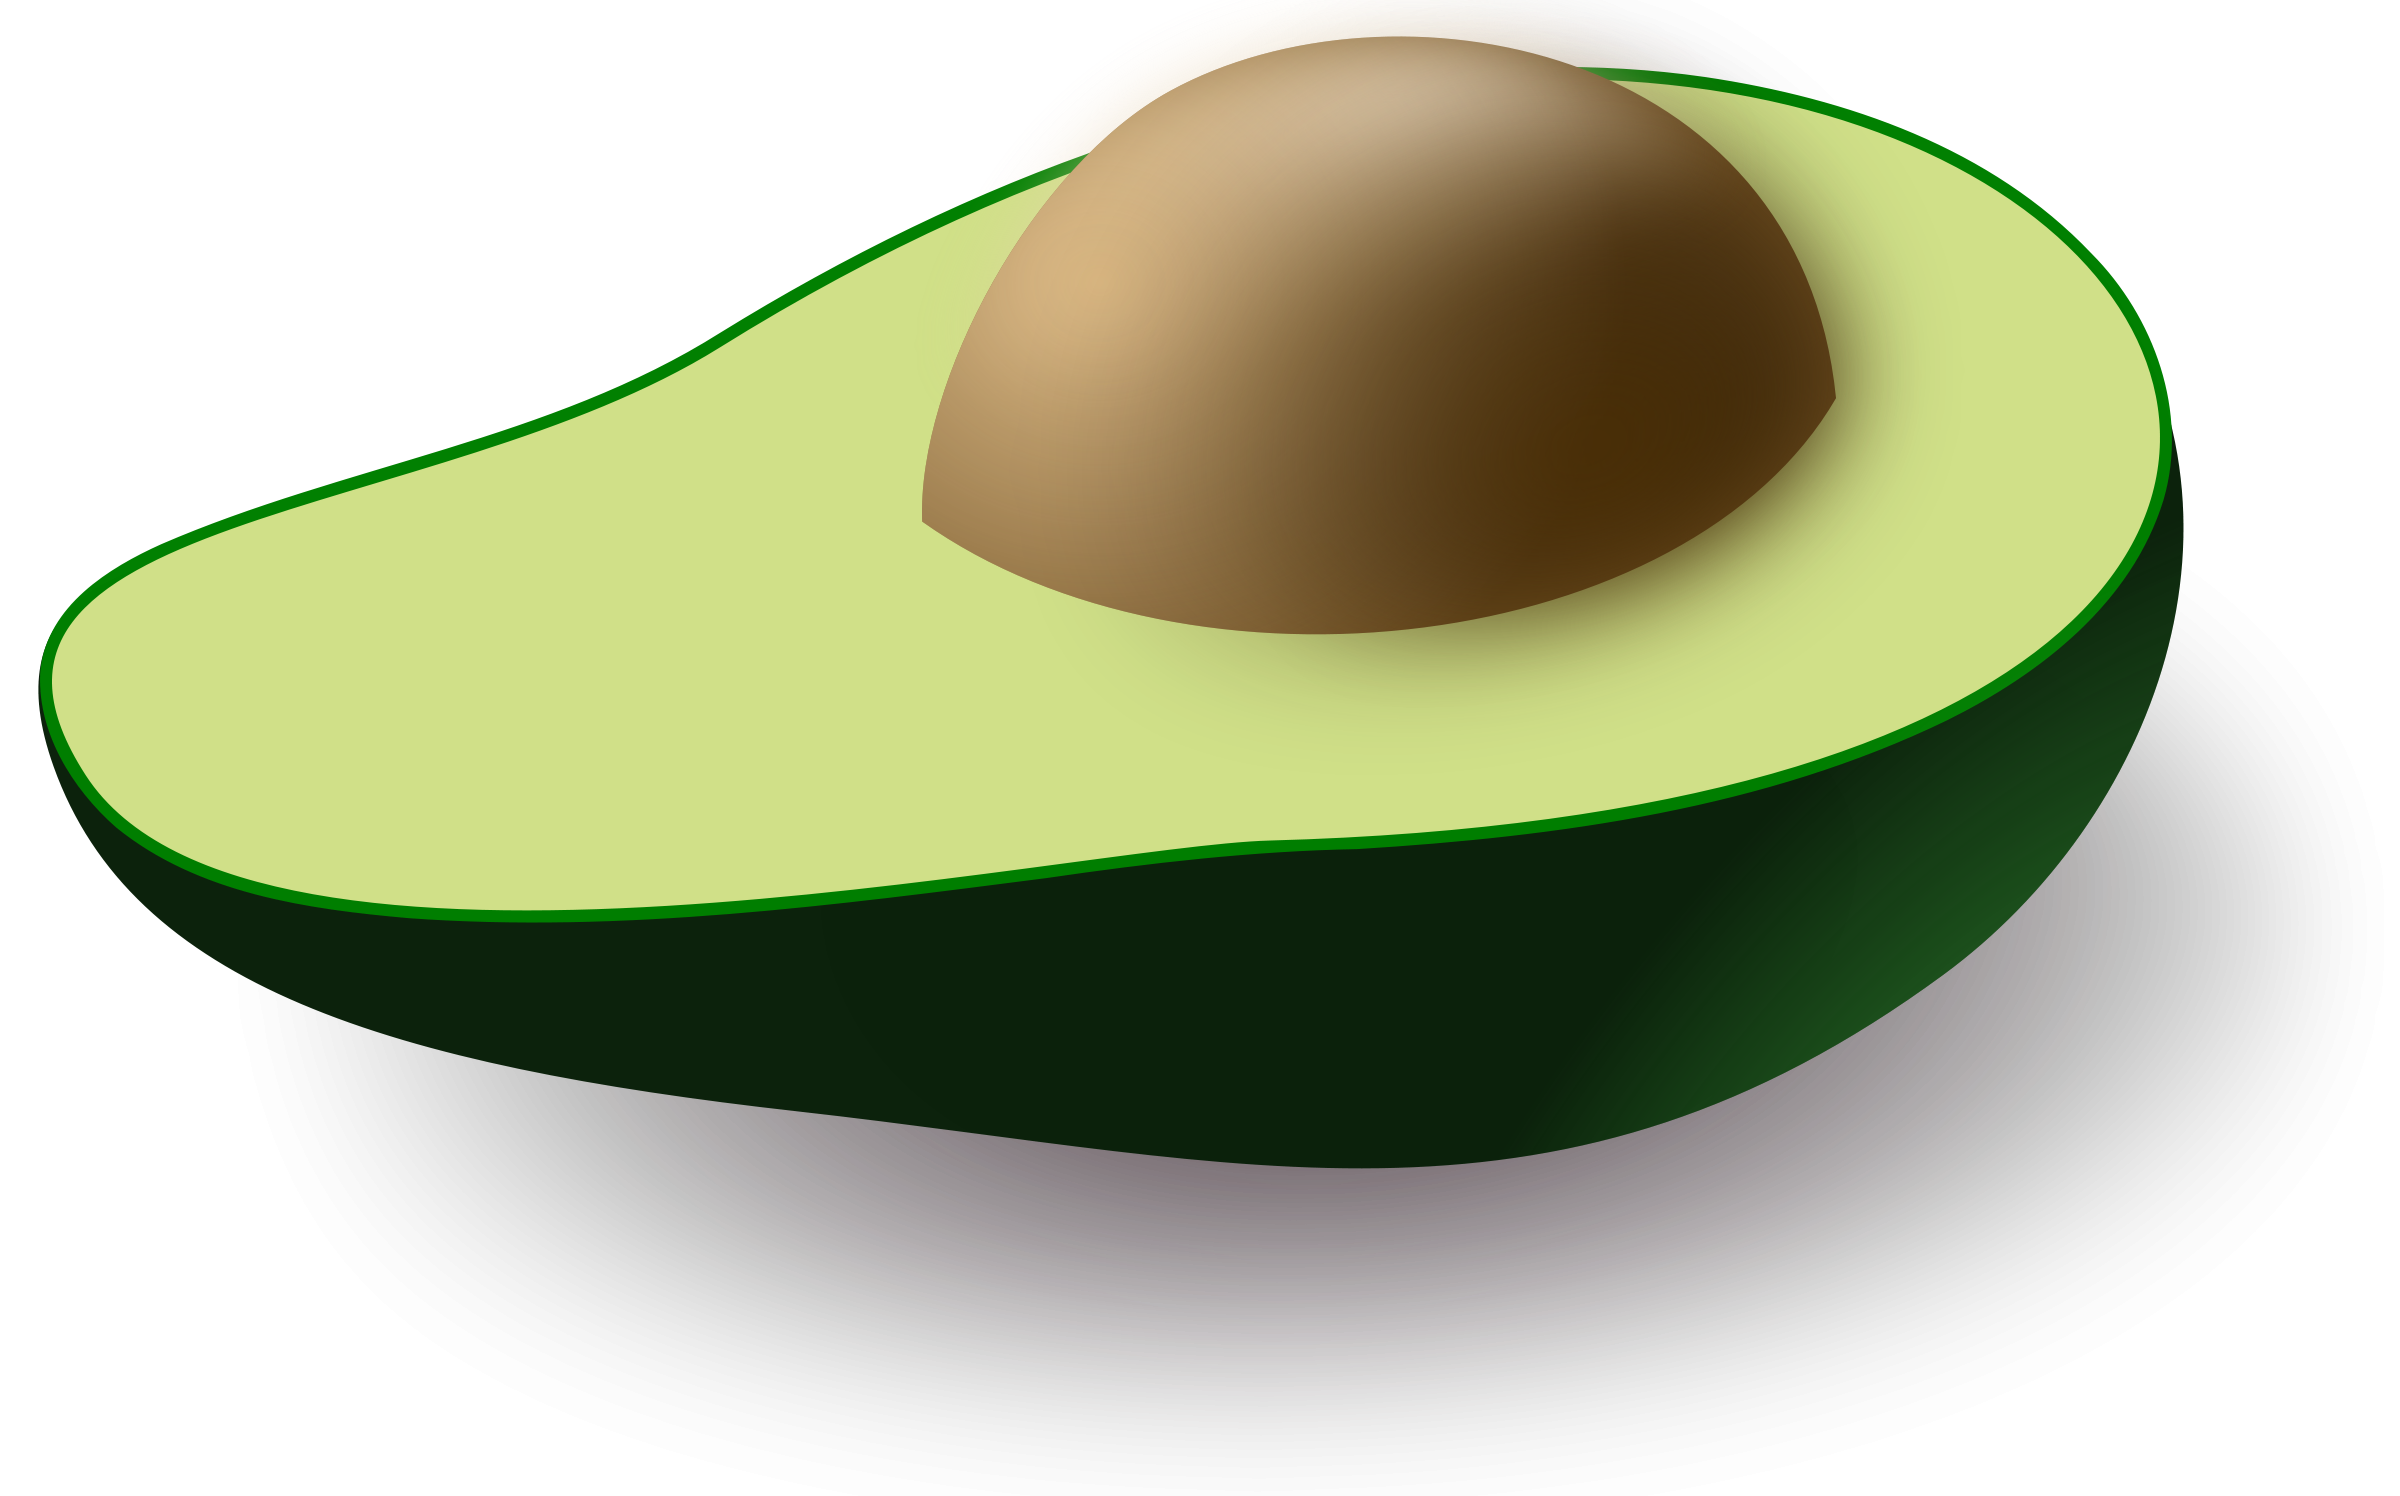 transparent avocado cartoon